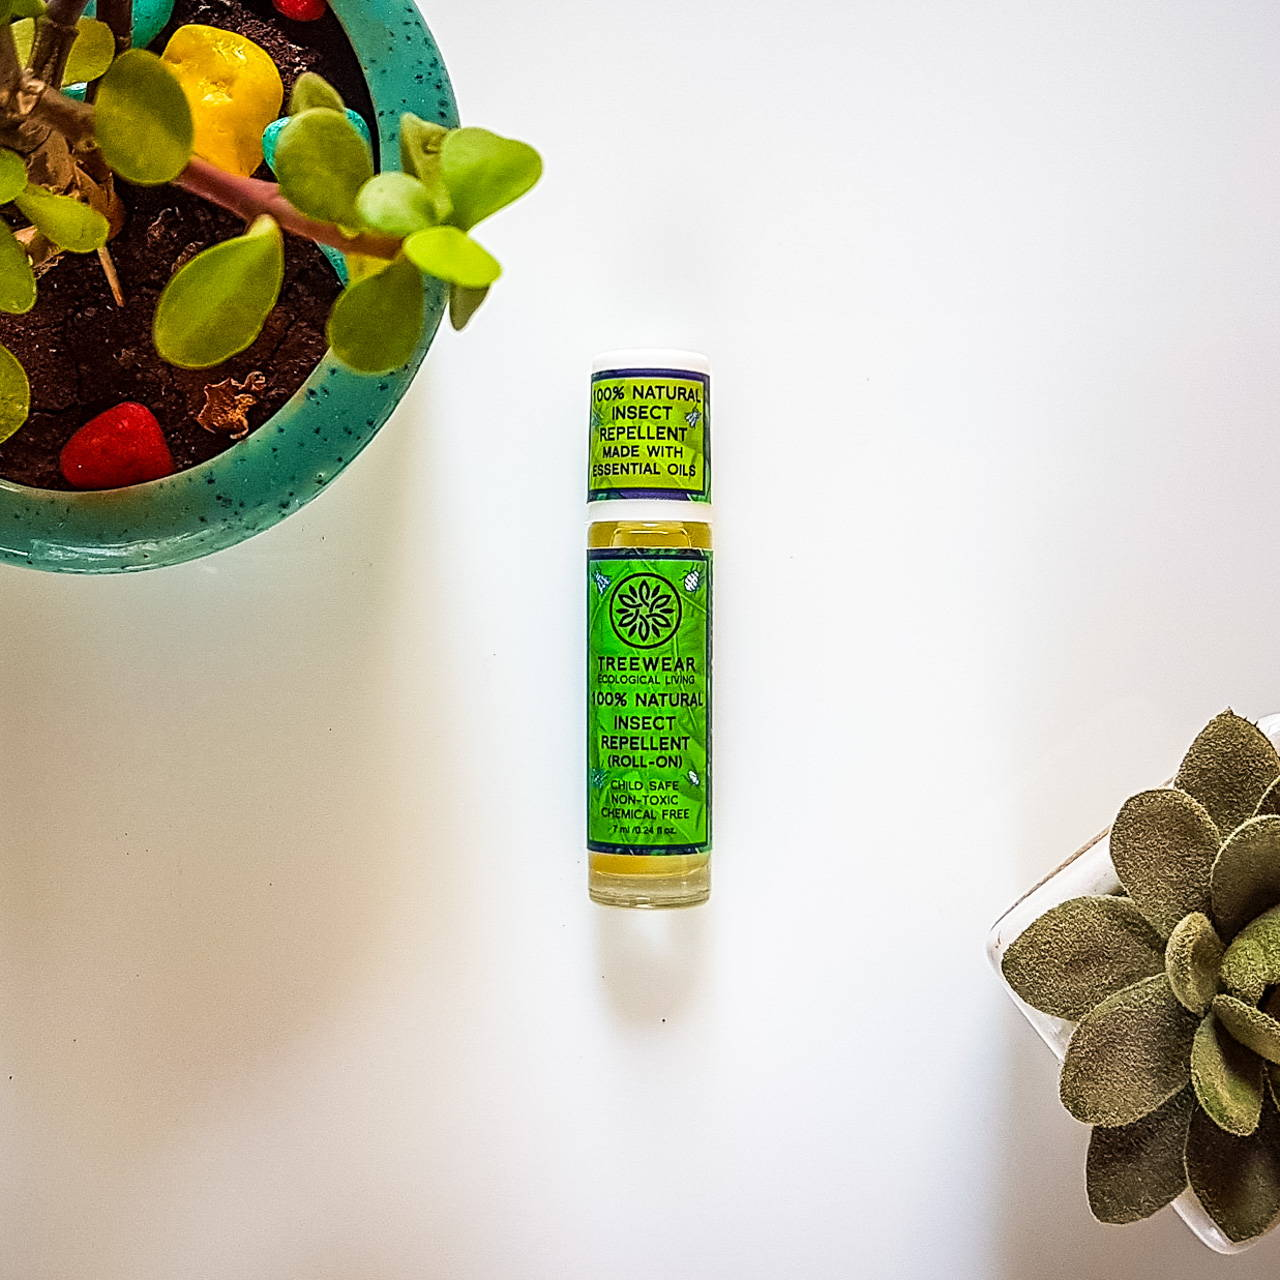 TreeWear Natural Insect Repellent Roll-on